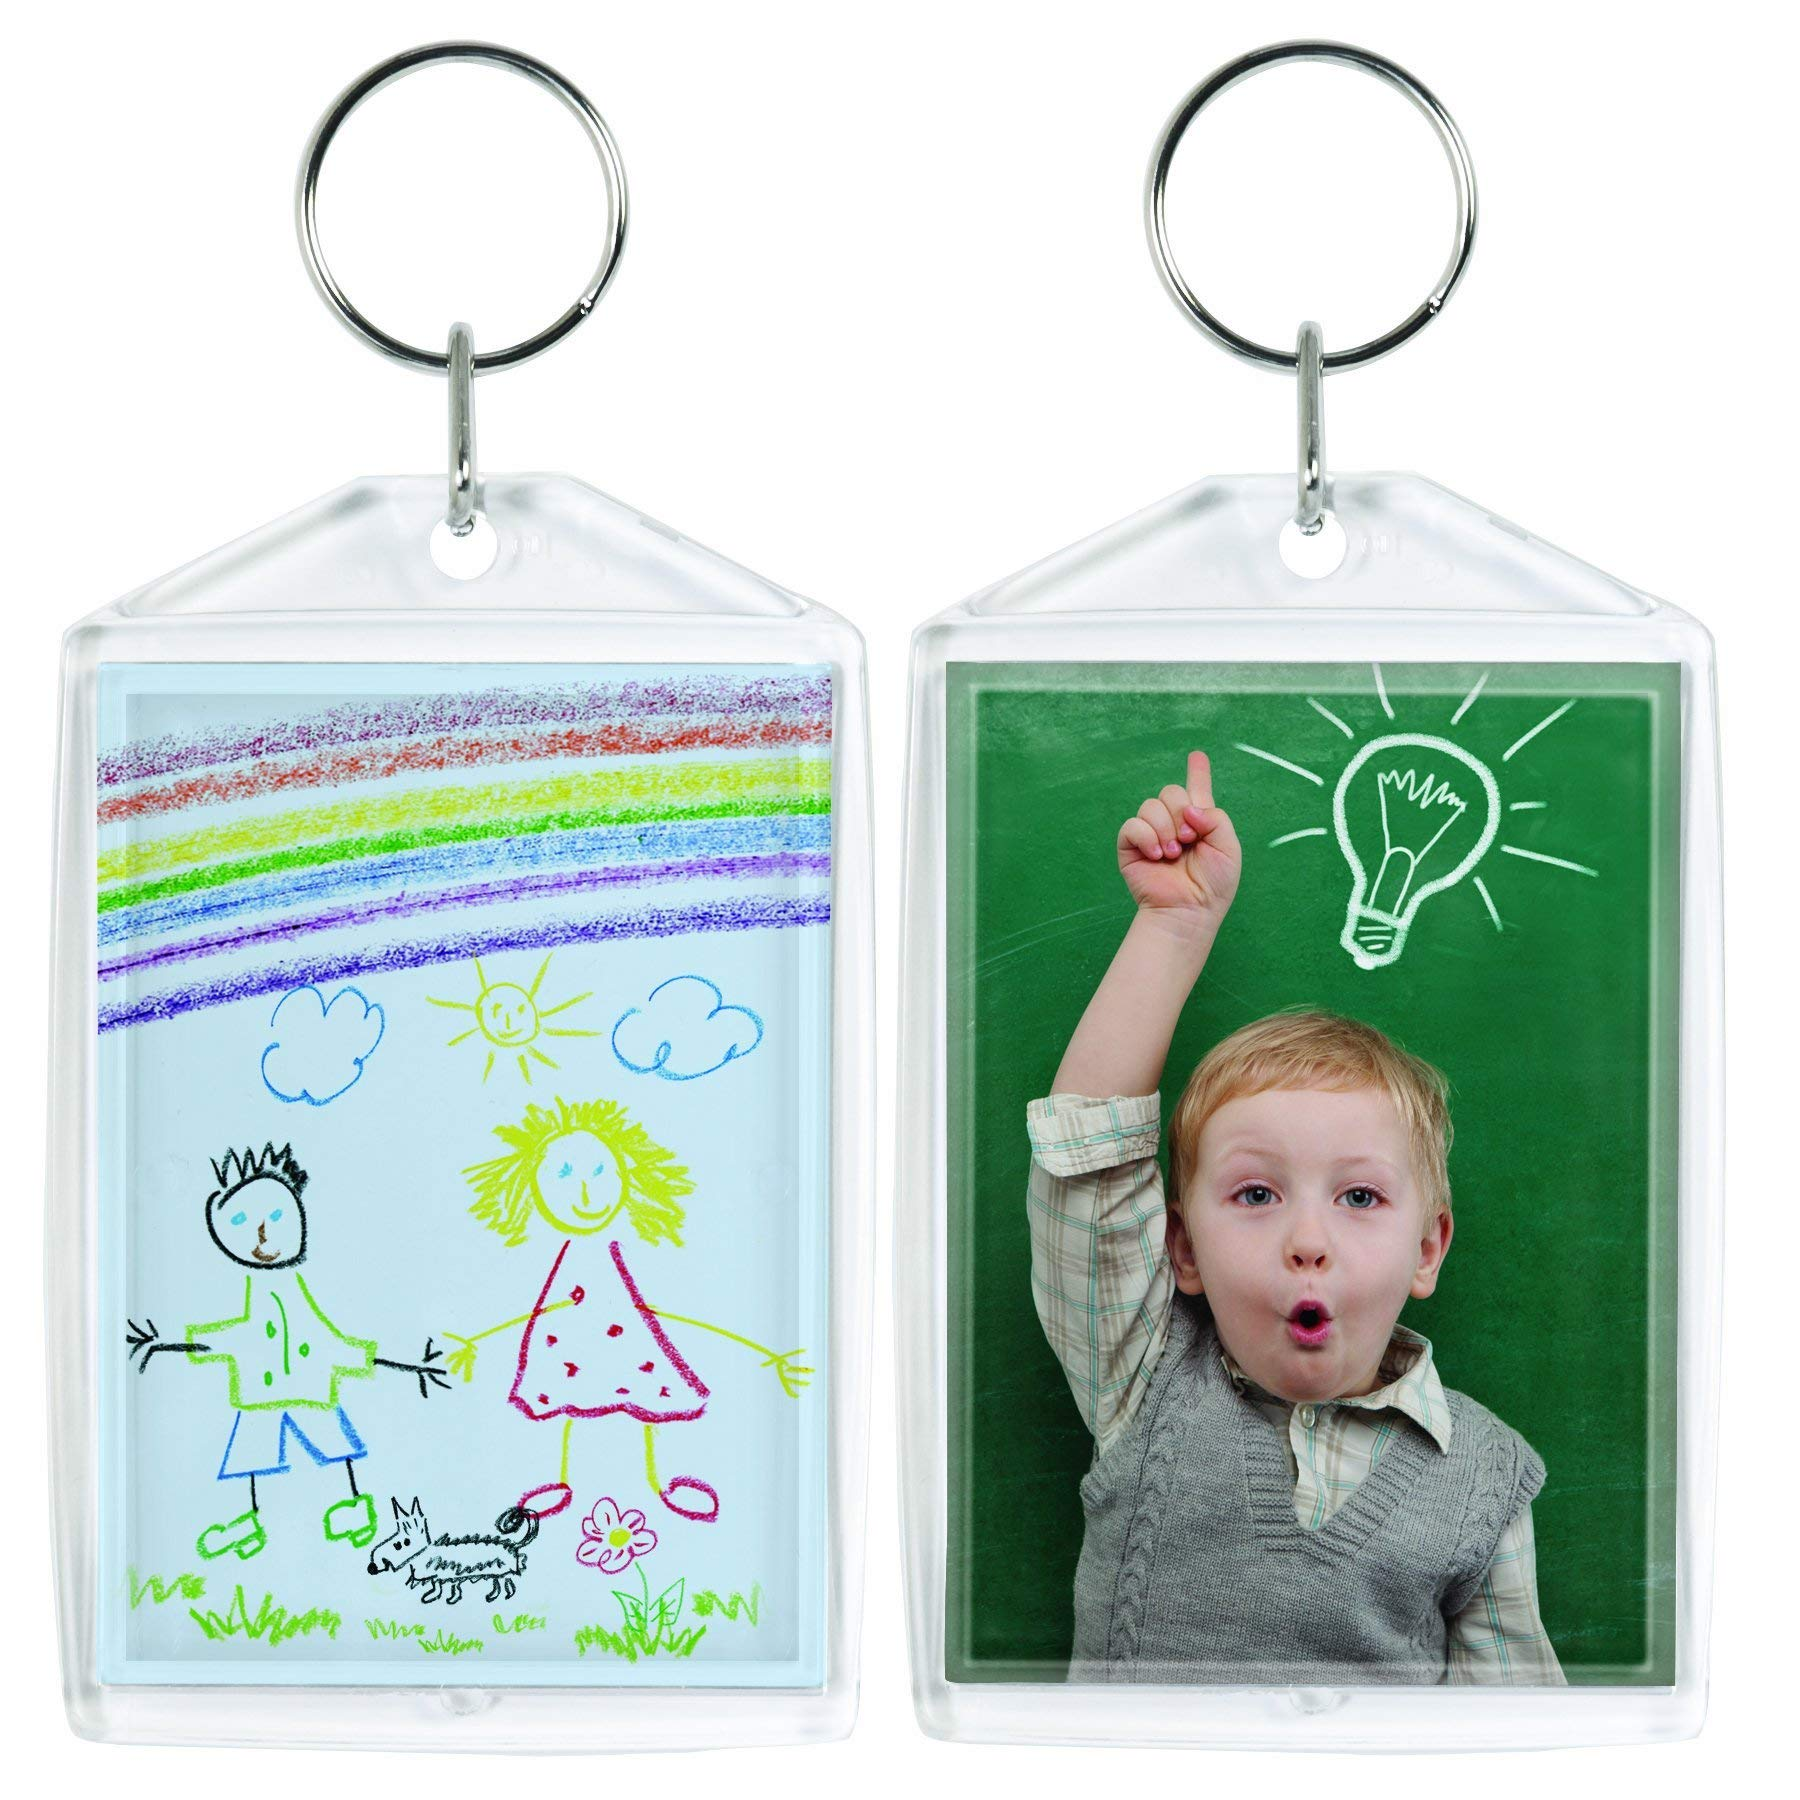 Acrylic Photo Snap-in Keychain - 25 Pack (2'' x 3'') by Snapins